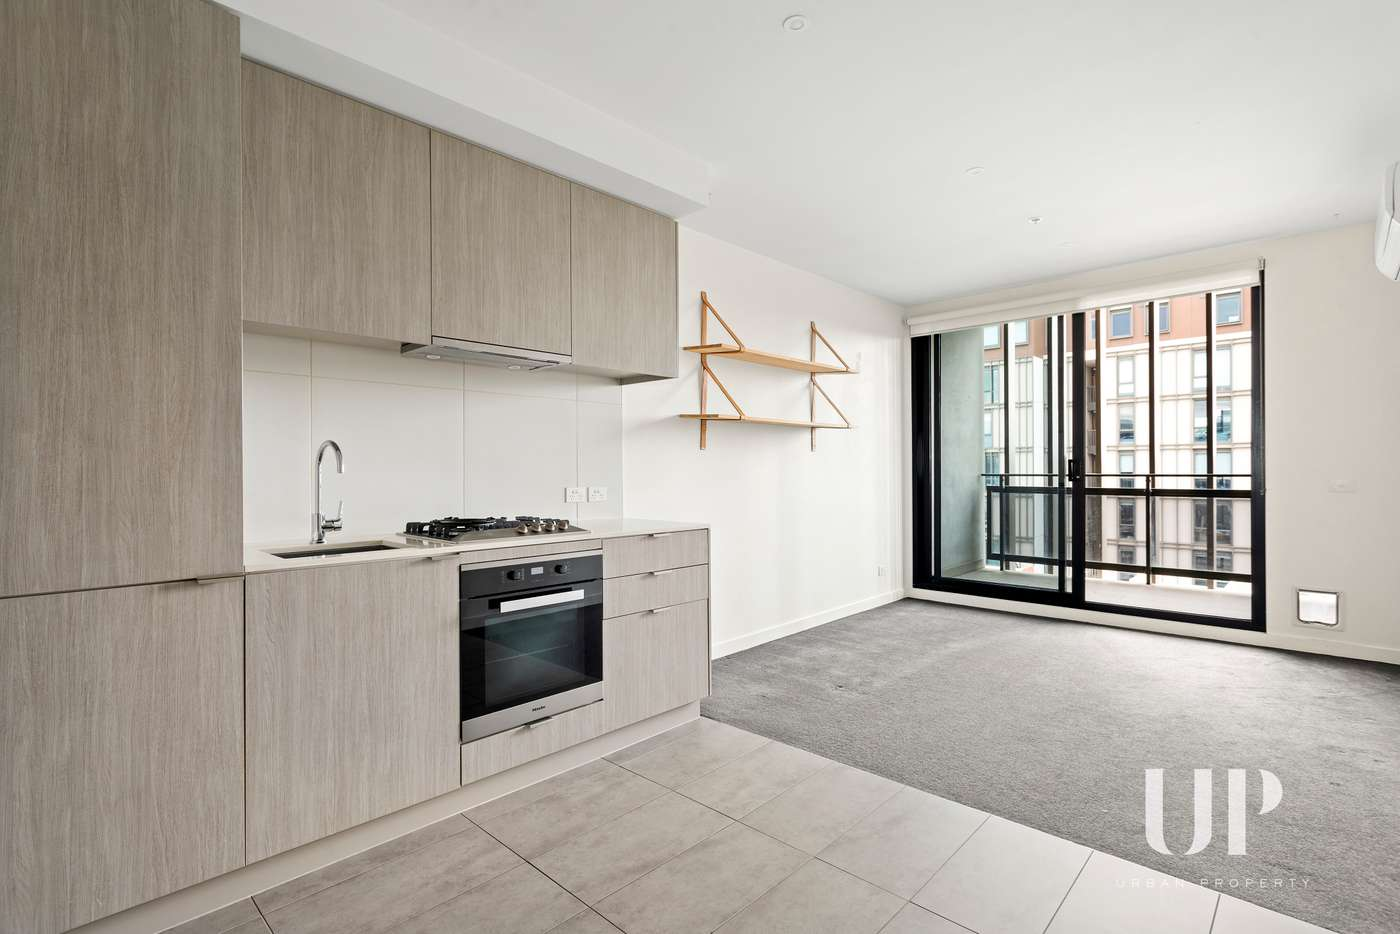 Main view of Homely apartment listing, 506/6 Mater Street, Collingwood VIC 3066